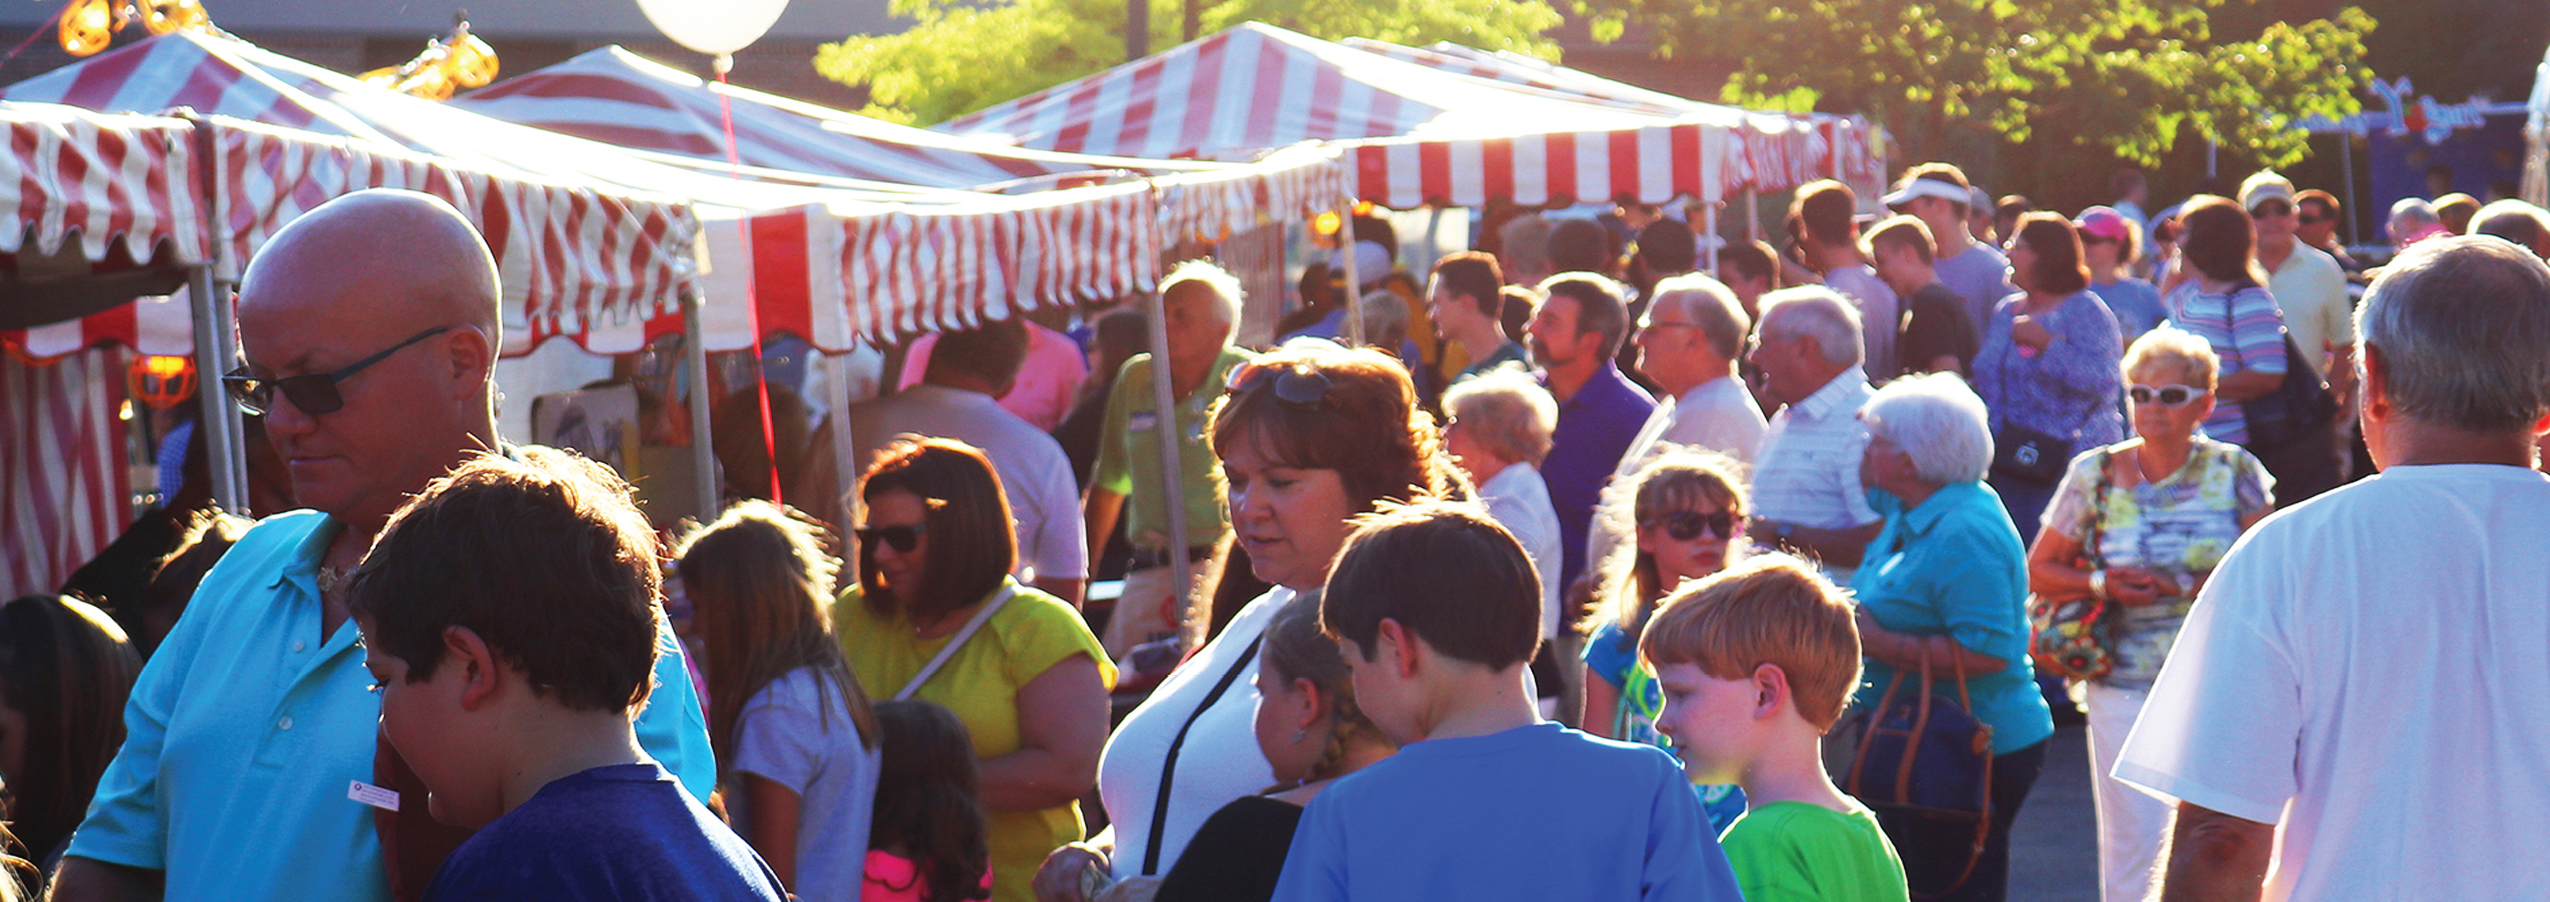 The Official Diocese of Greensburg Summer Event Guide - The